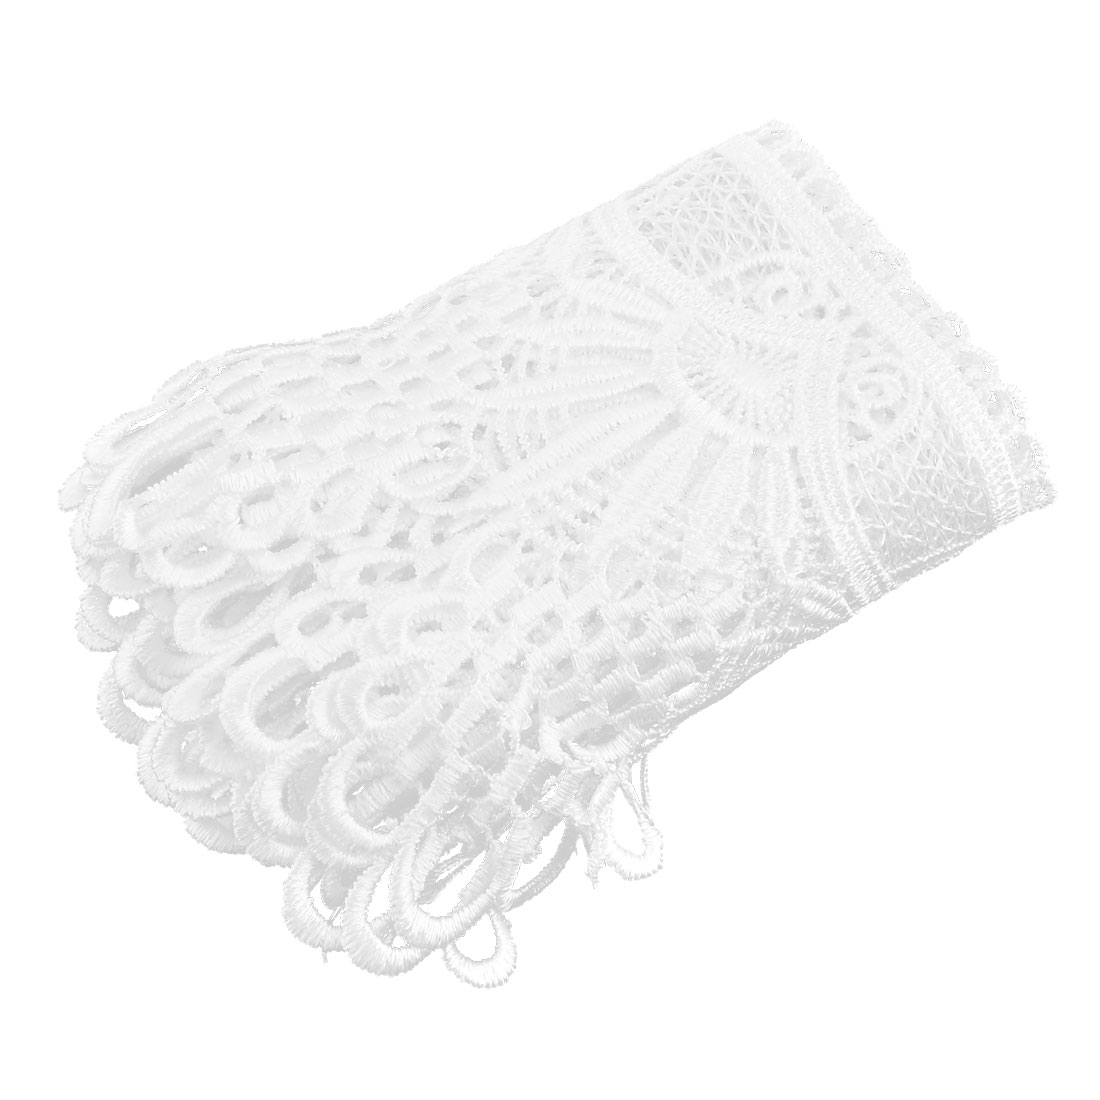 Family Polyester DTY Neckline Sewing Lace Trim Applique White 5.4 Inches Width